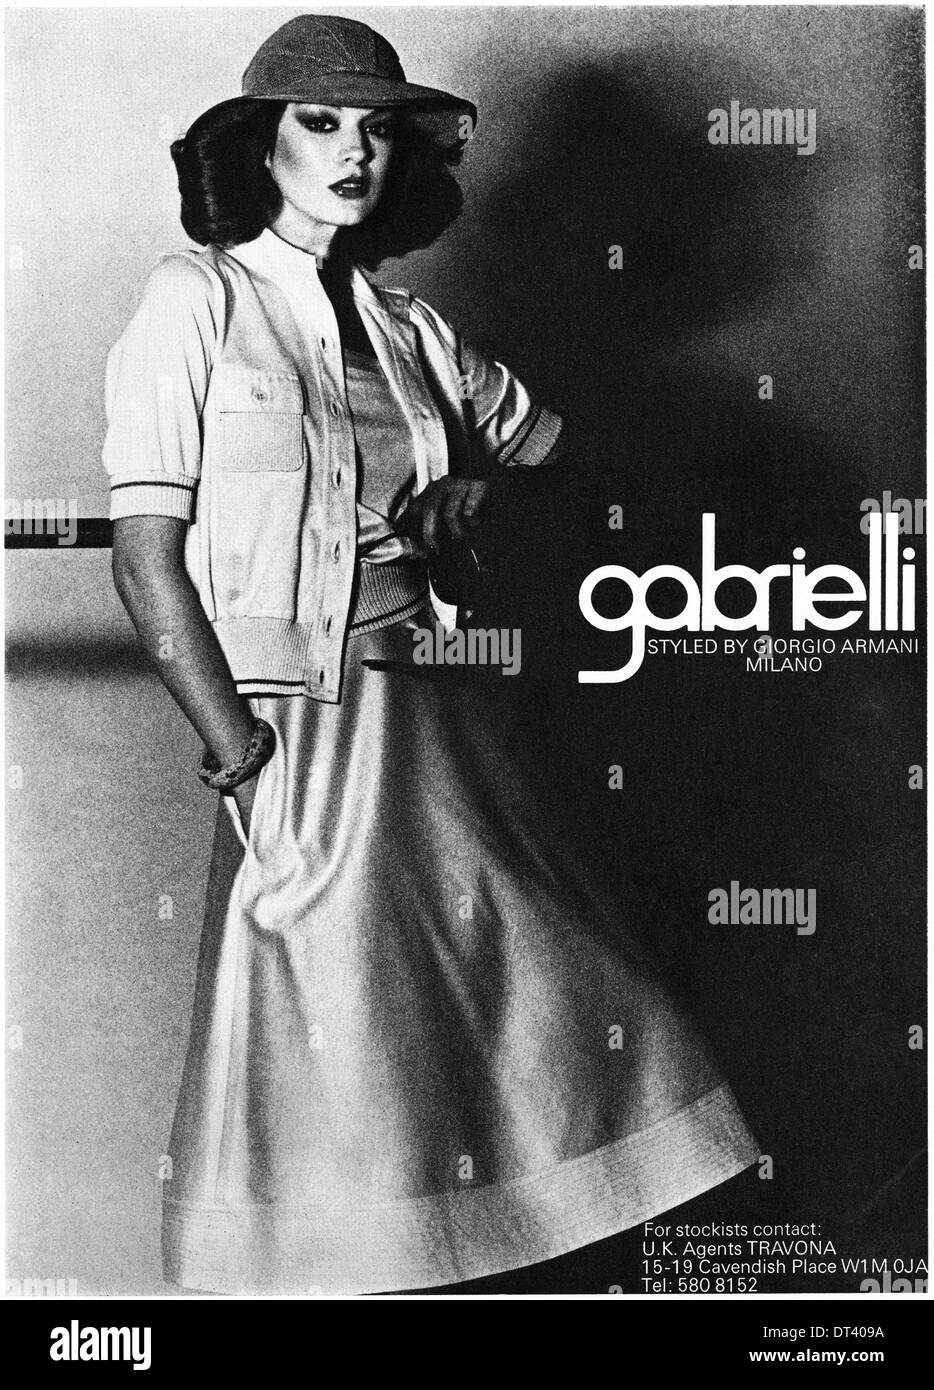 1970s fashion magazine advertisement advertising GABRIELLI women's fashion by Giorgio Armani, advert circa 1975 - Stock Image